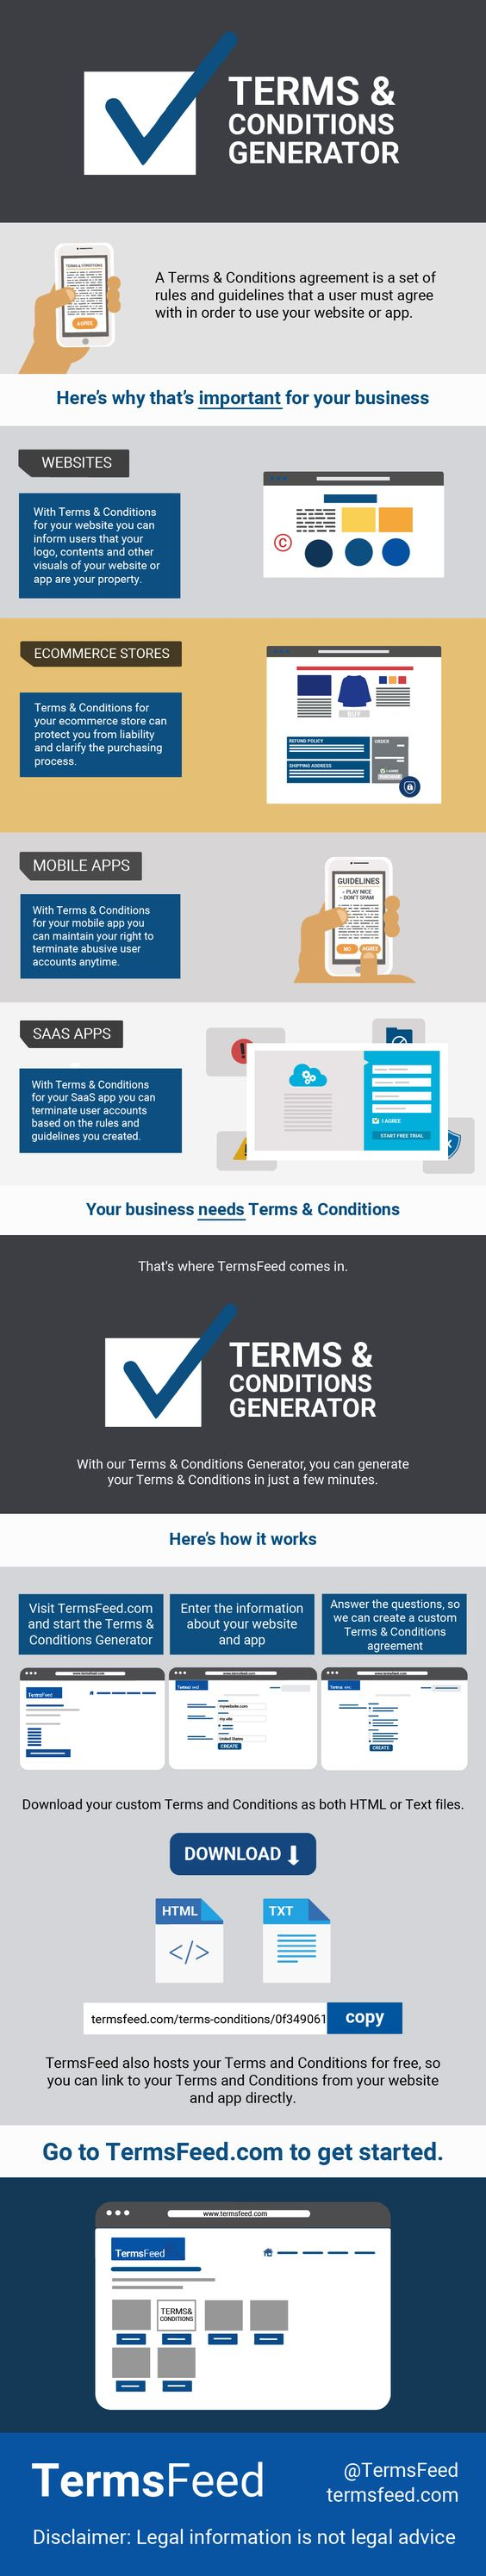 Free Terms & Conditions Generator - TermsFeed